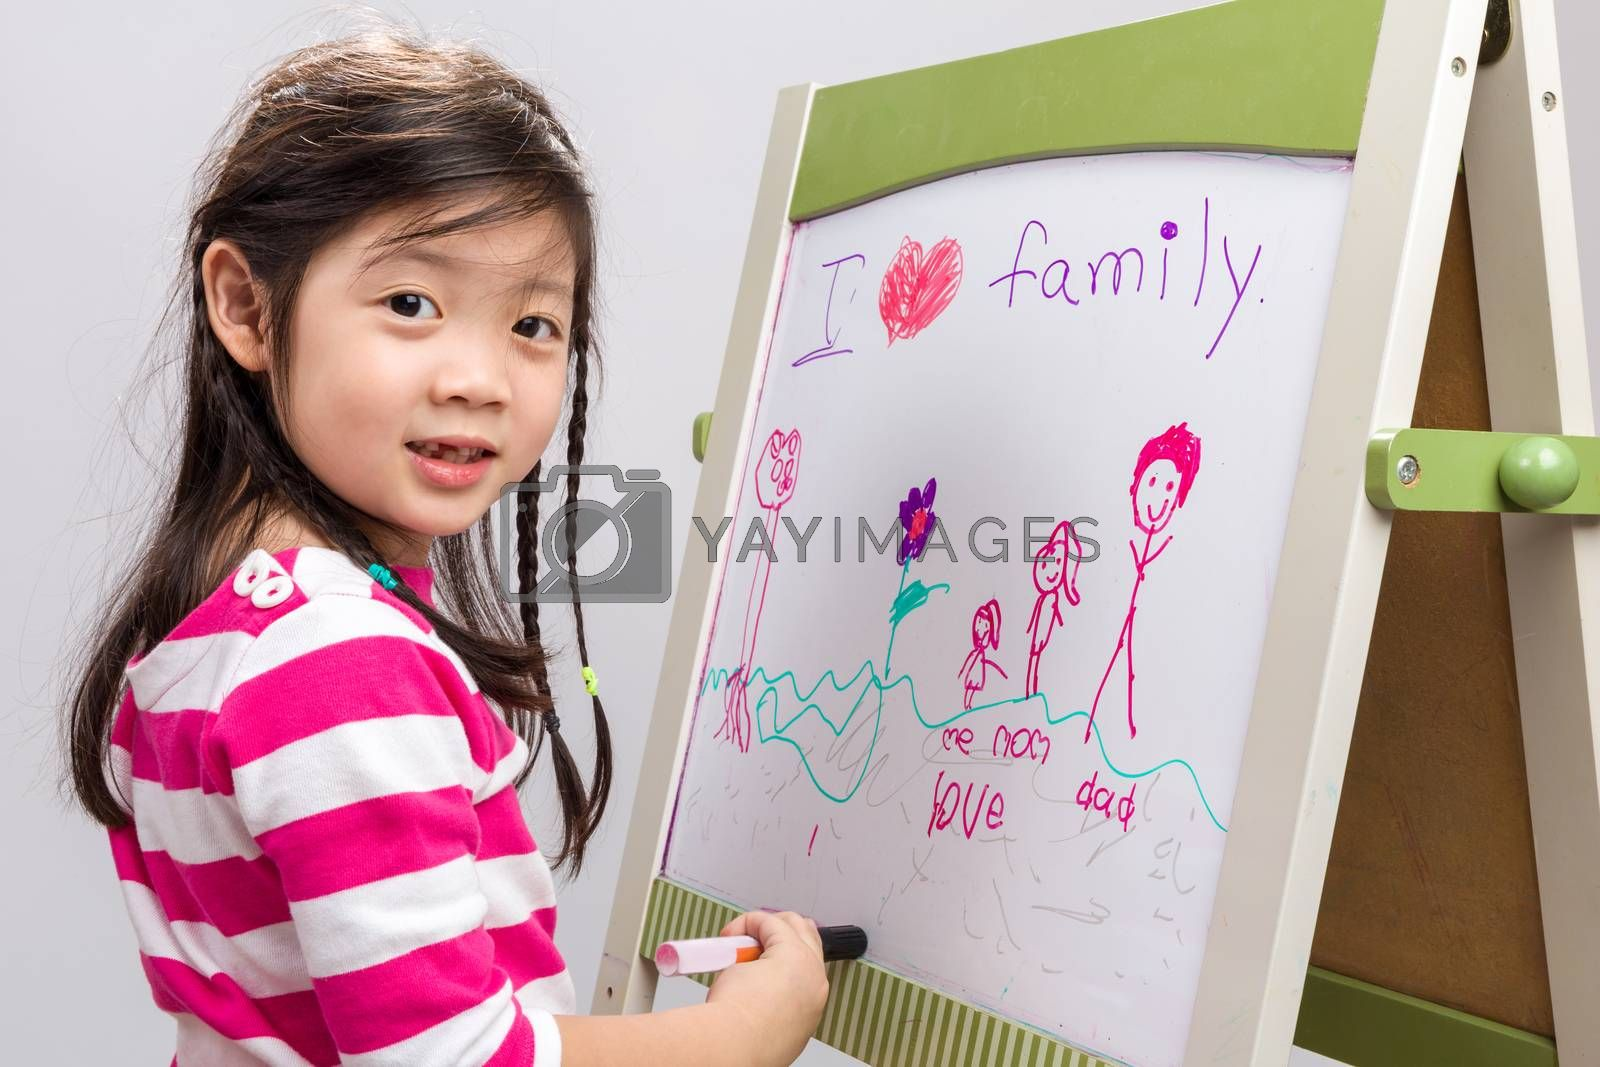 Kid drawing her family picture on whiteboard.